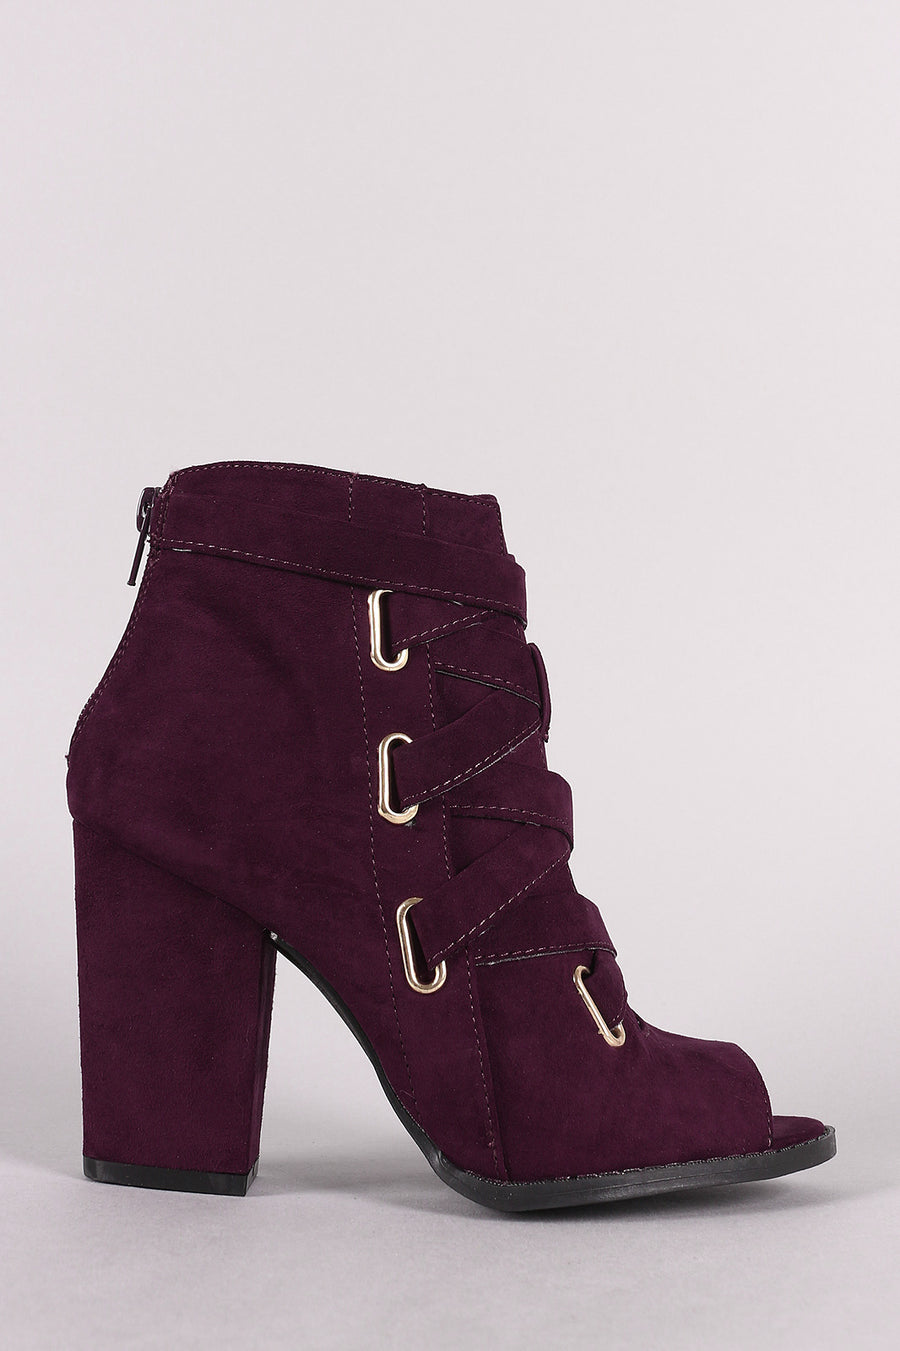 Clara Suede Peep Toe Corset Lace Up Chunky Heeled Booties Photo - Plush Boutique